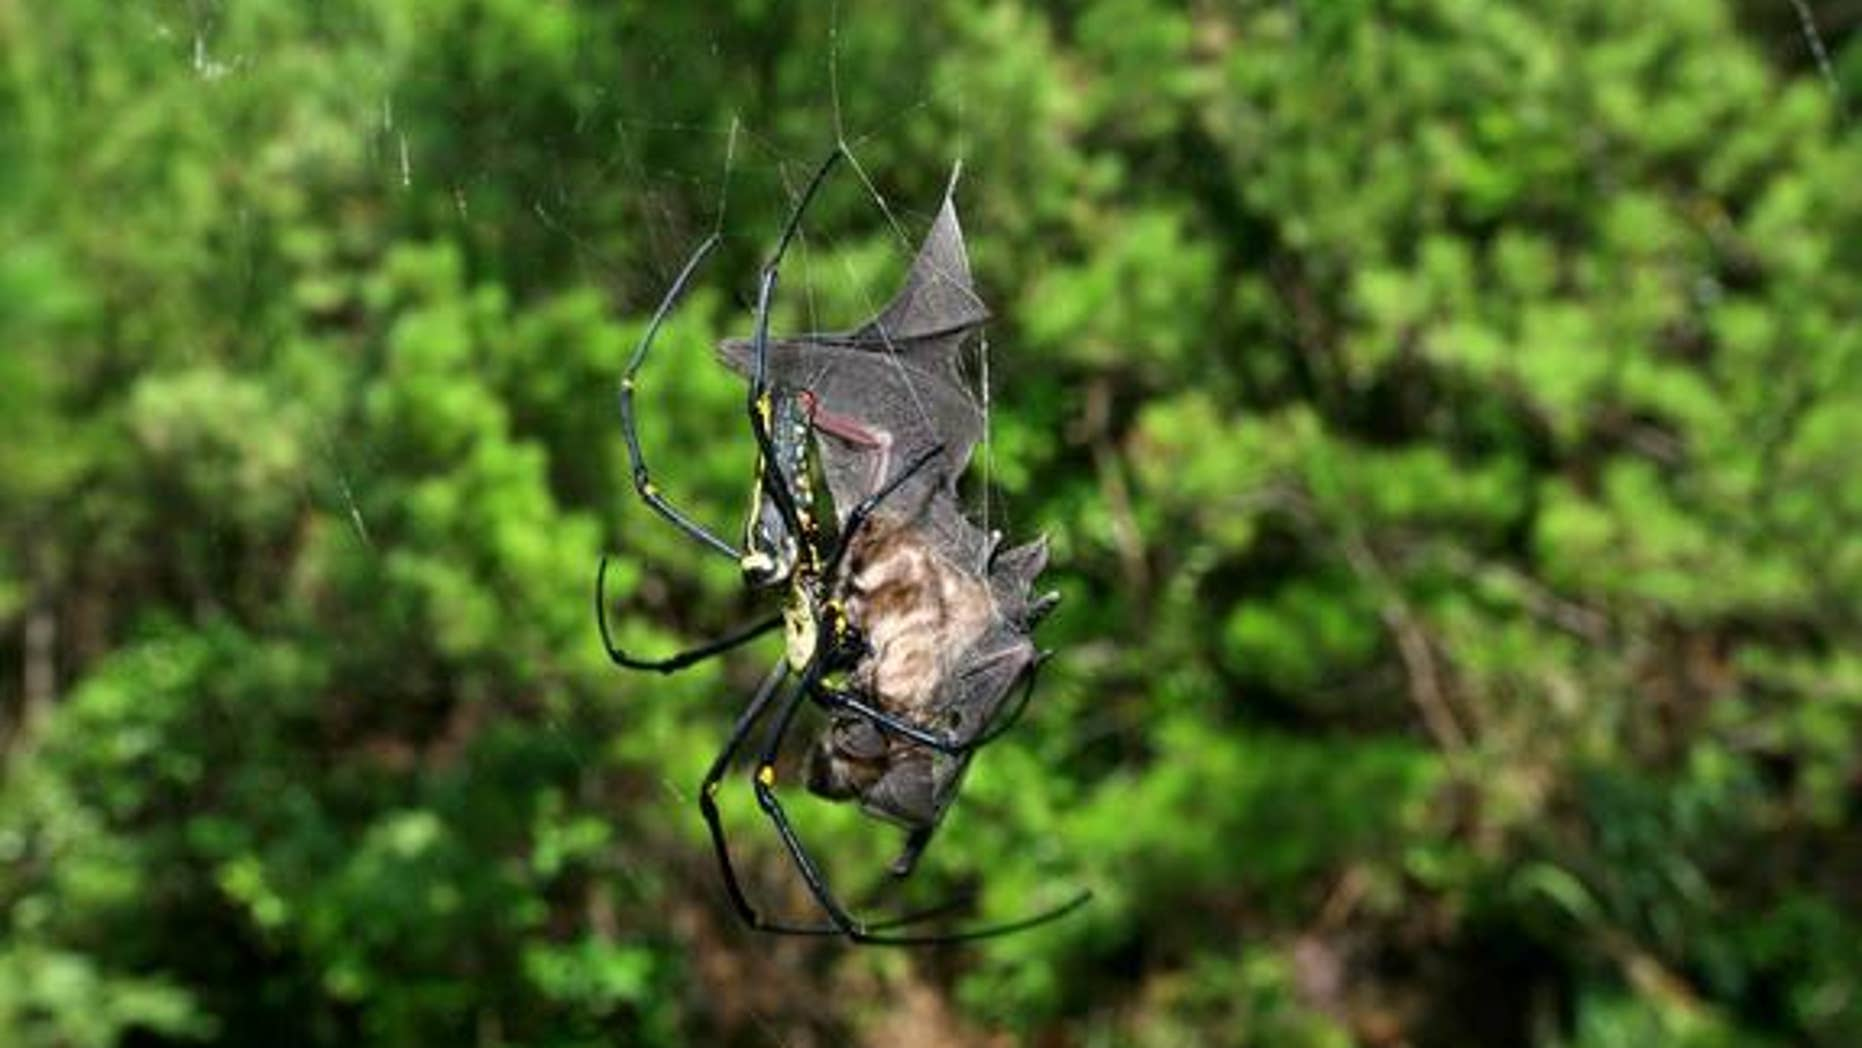 Bat-eating spiders are common and apparently creep around every continent, except Antarctica, devouring various bat species. Here, a dead bat (<em>Rhinolophus cornutus orii</em>) caught in the web of a female <em>Nephila pilipes</em> on Amami-O